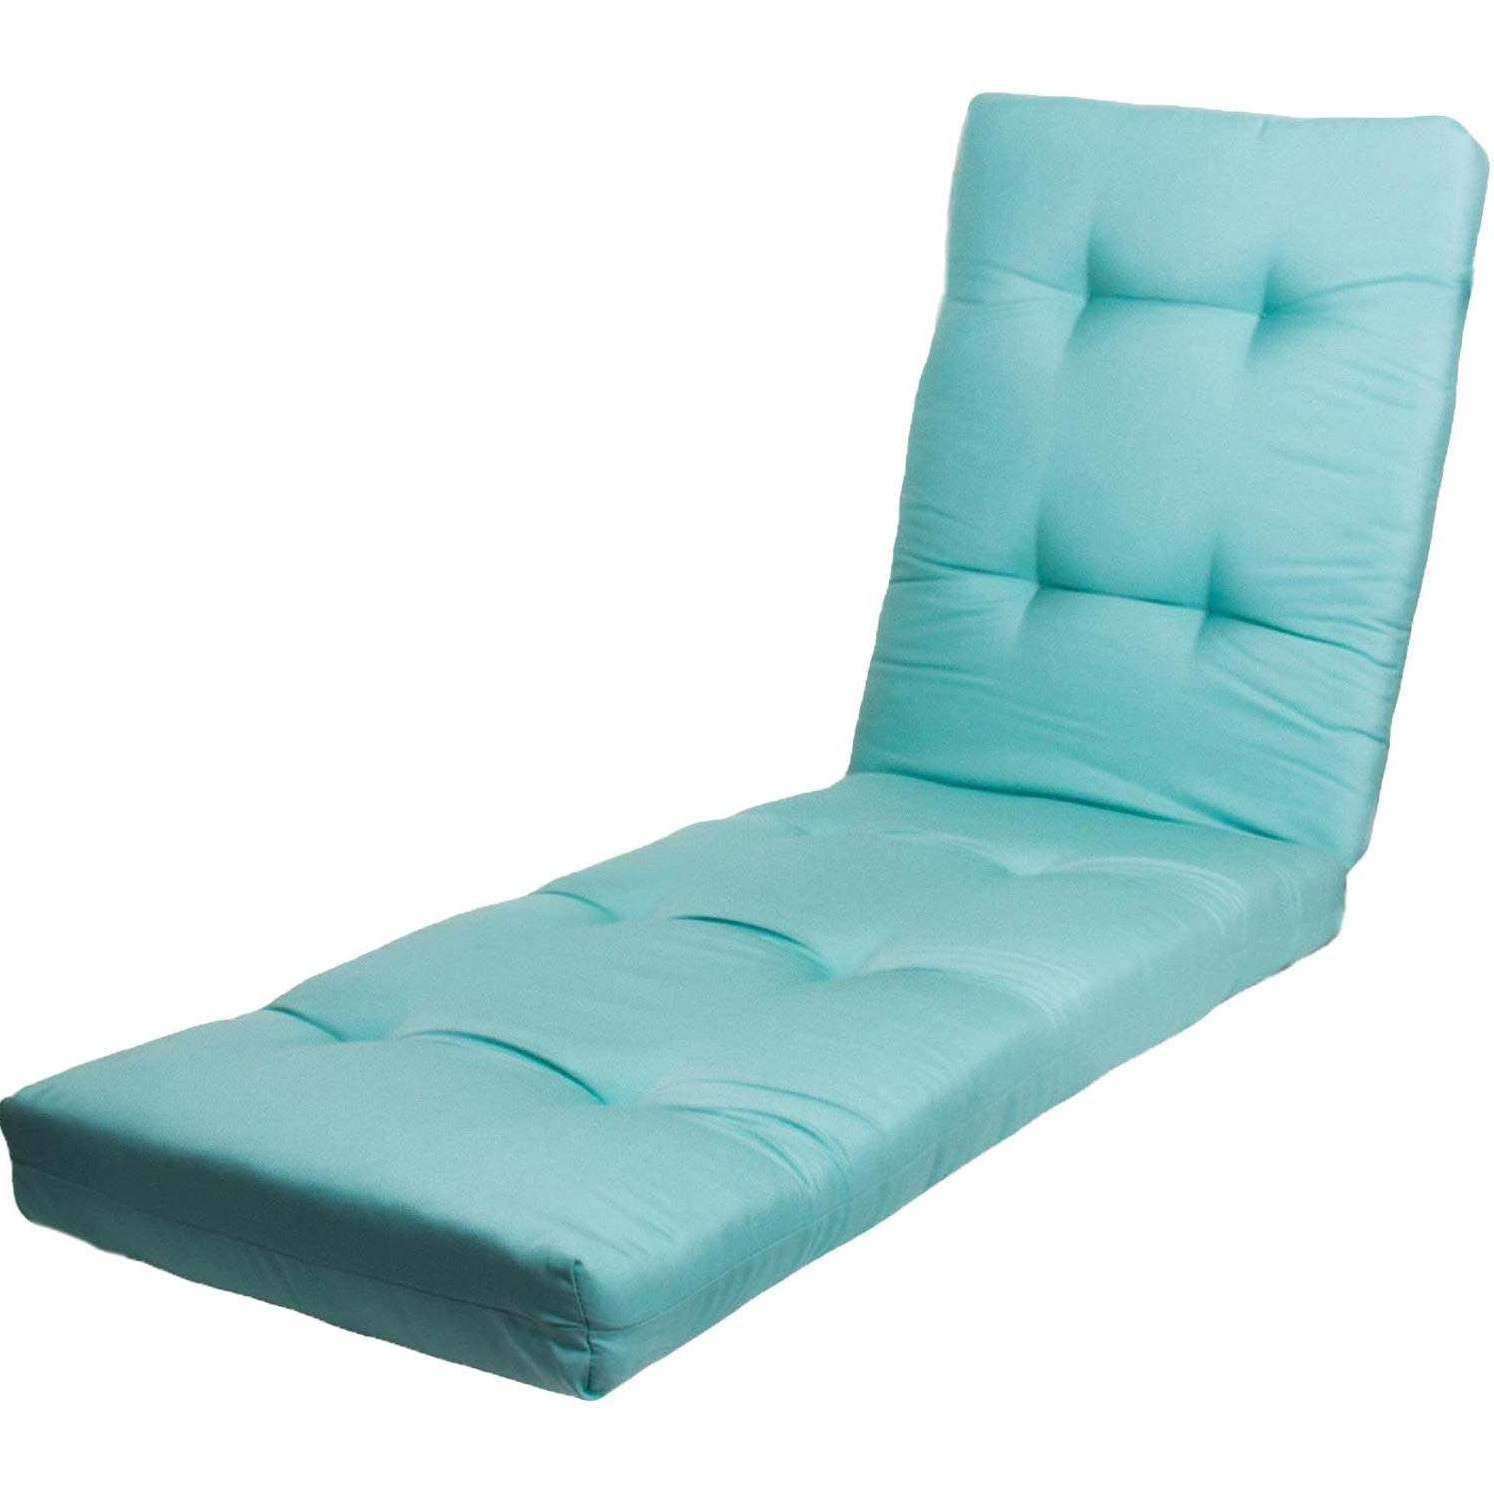 Sunbrella Canvas Glacier Extra Long Outdoor Replacement Chaise With Well Known Chaise Lounge Outdoor Cushions (View 10 of 15)